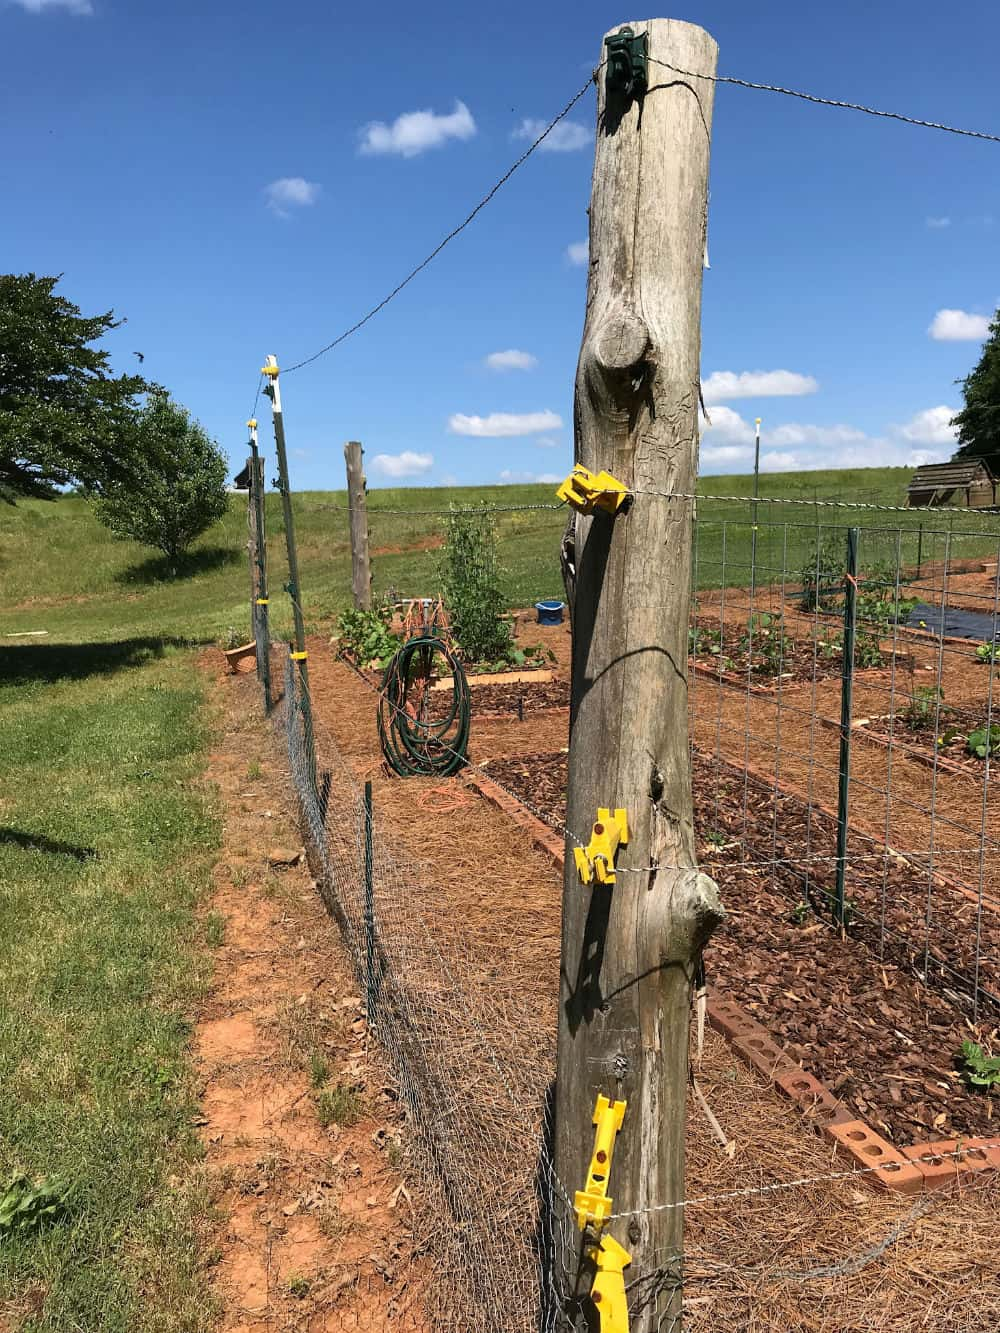 Electric fence used to keep deer out of the garden.